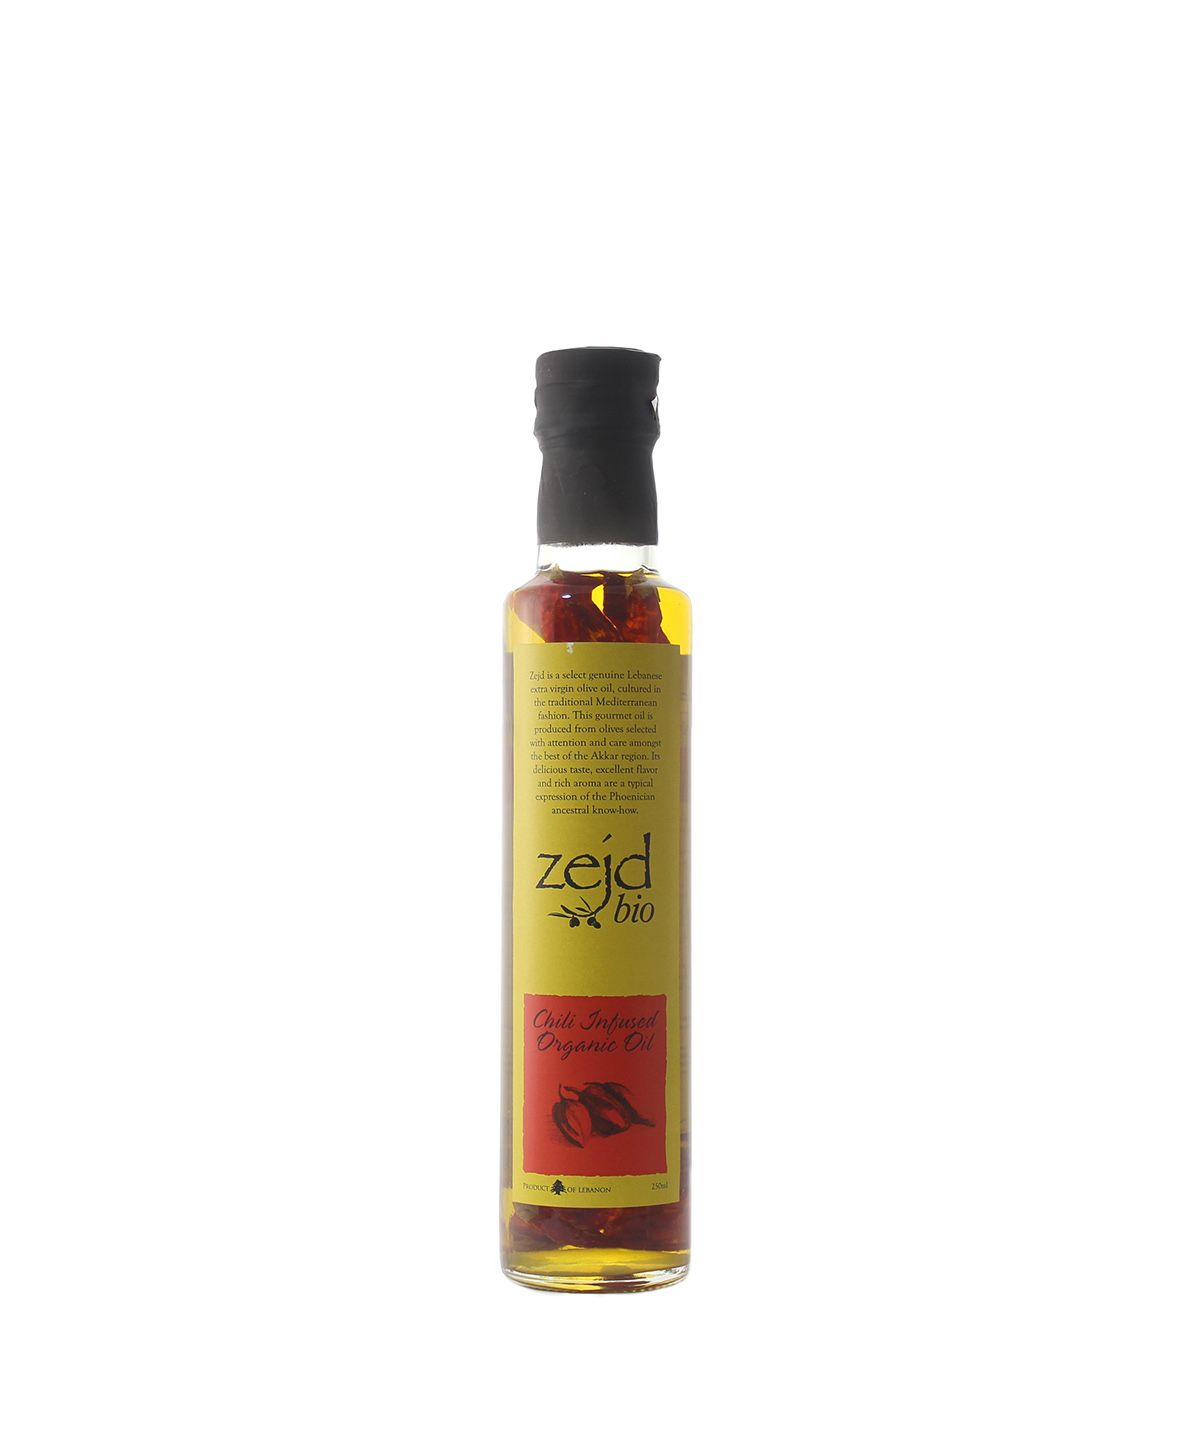 House of Zejd, Chili Infused Oil, 250mL